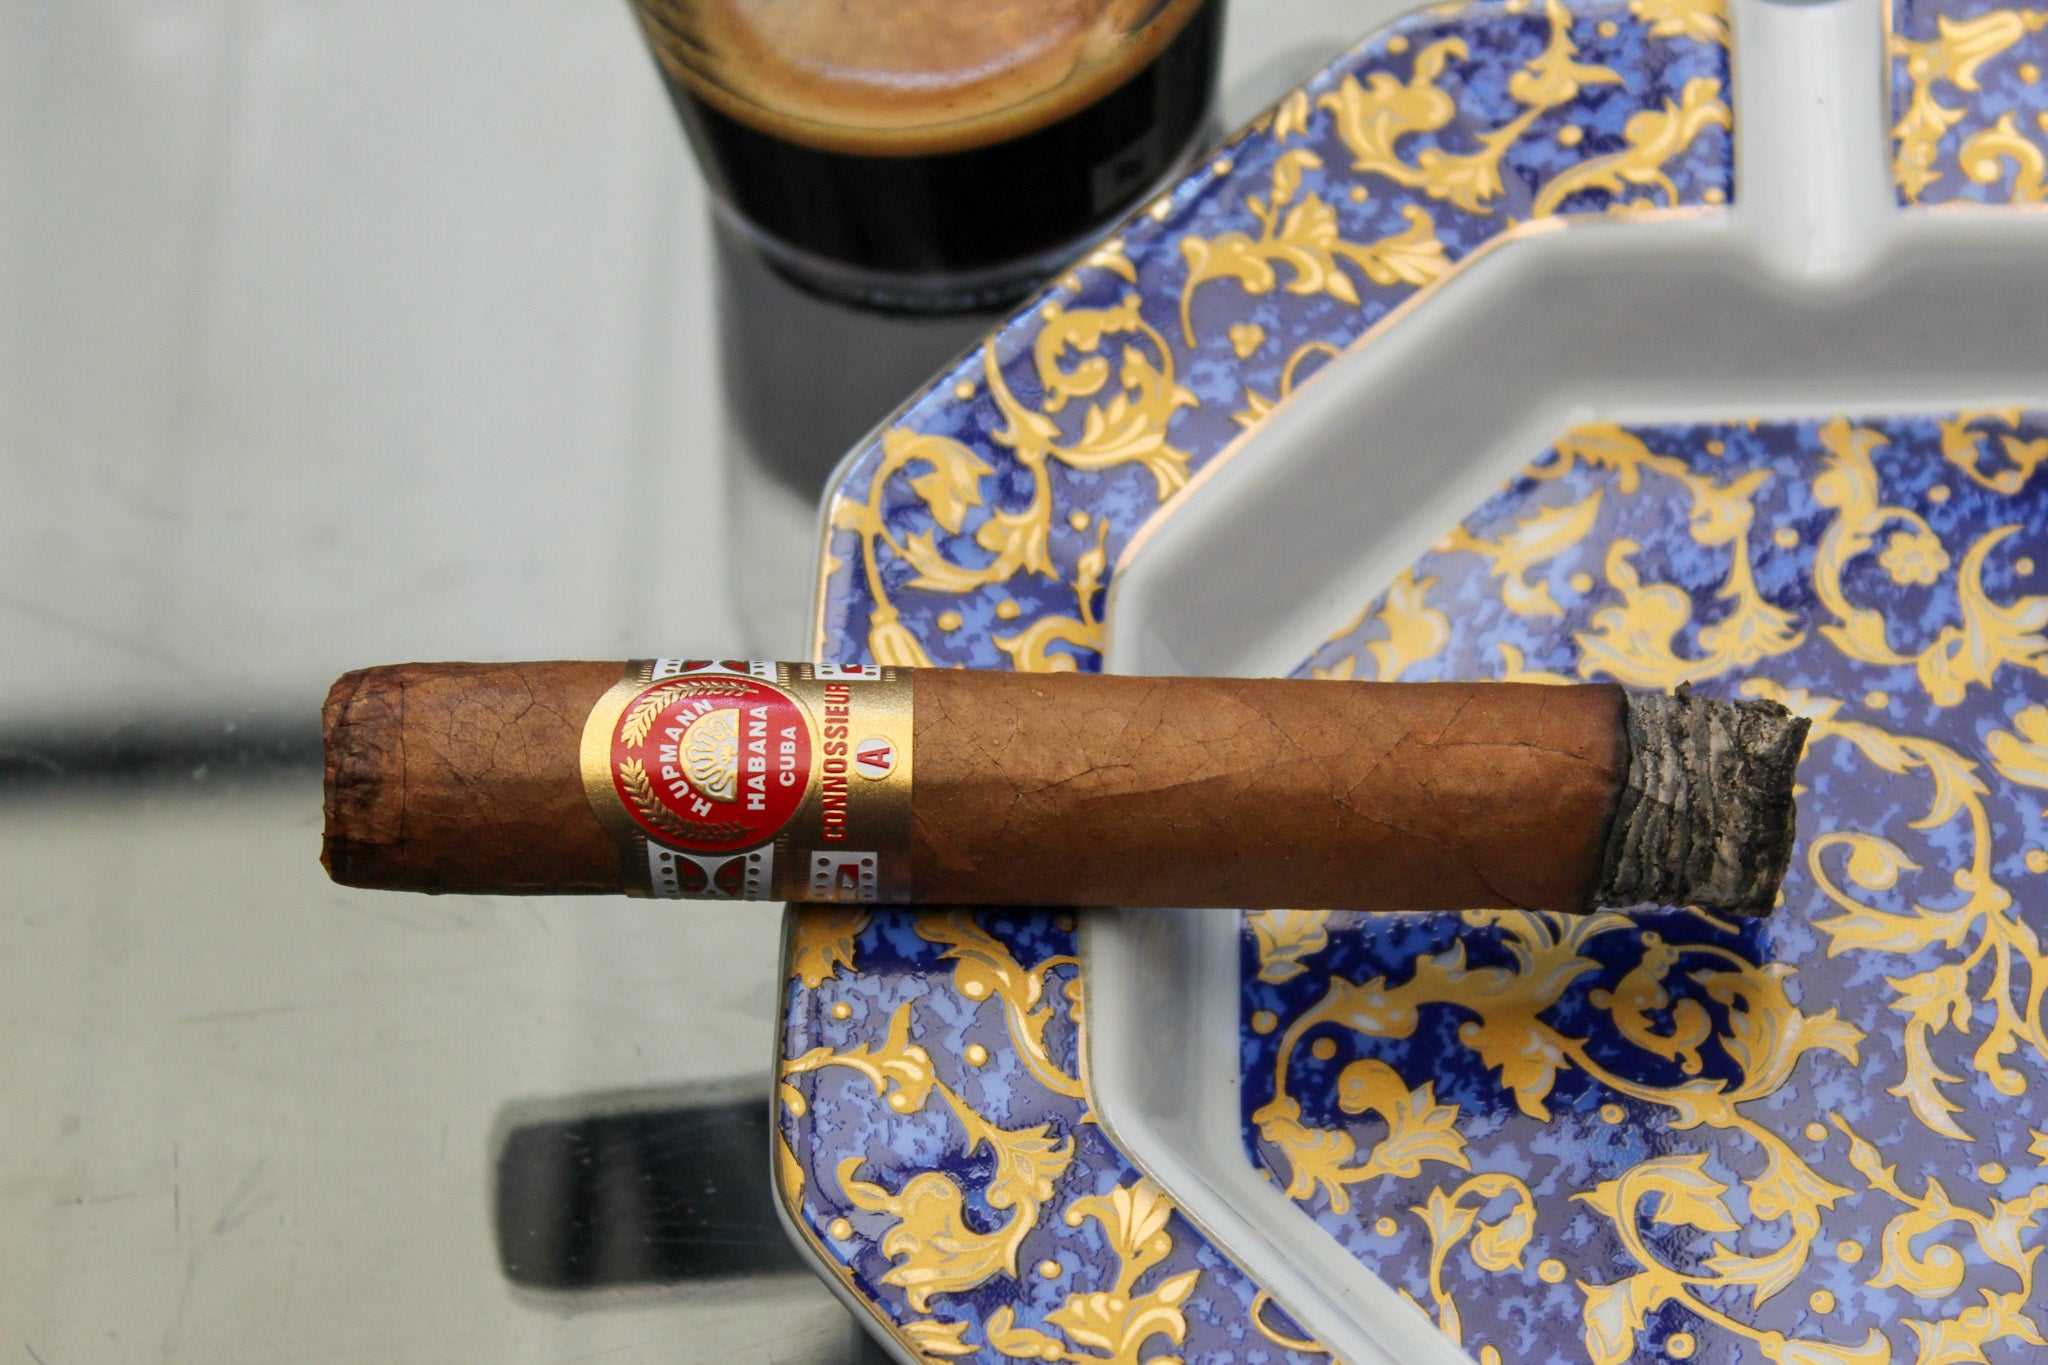 Up to 90 minutes of enjoyment from the H Upmann Connossieur A